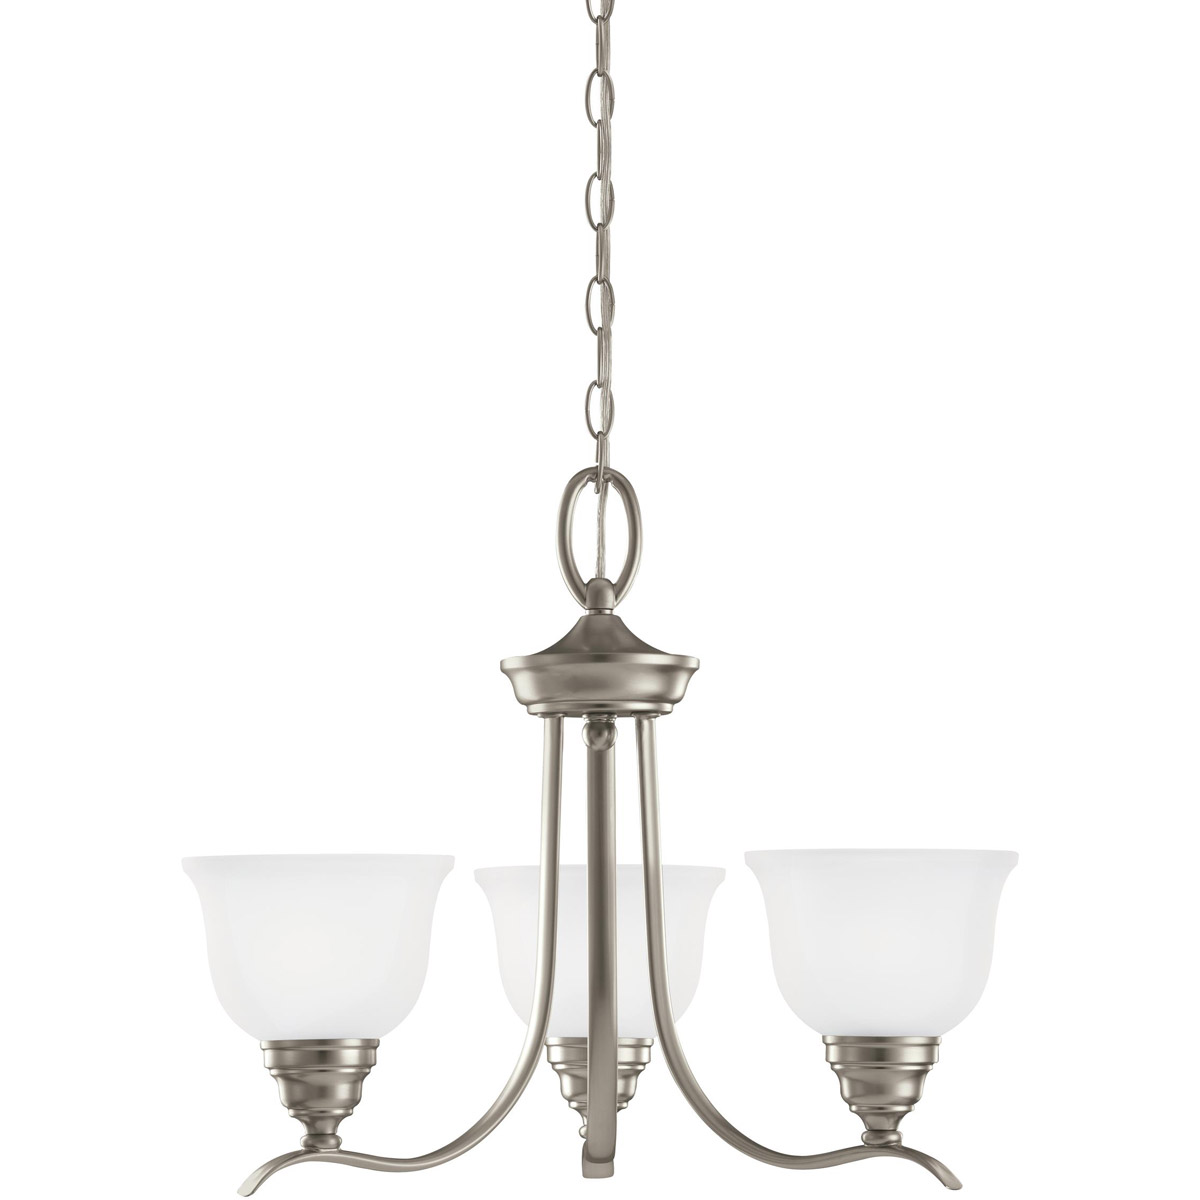 Sea Gull Lighting Wheaton 3 Light Chandelier in Brushed Nickel 31625-962 photo